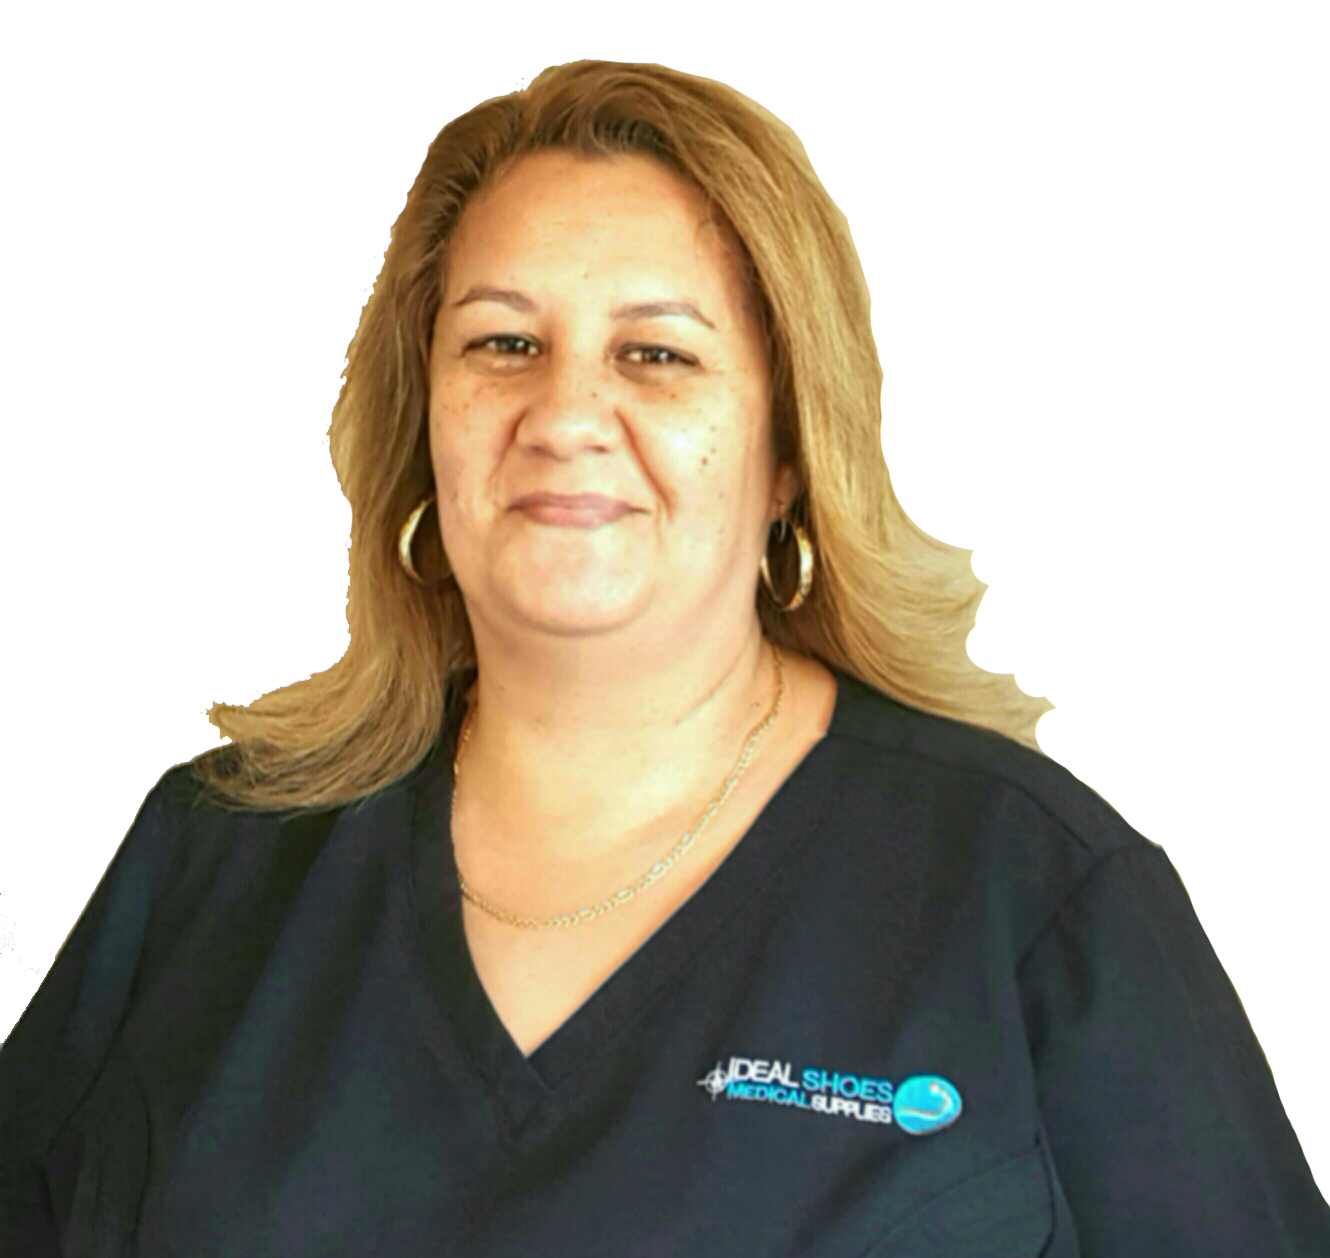 Linda Mendoza - Branch Manager / Shoe Fitter